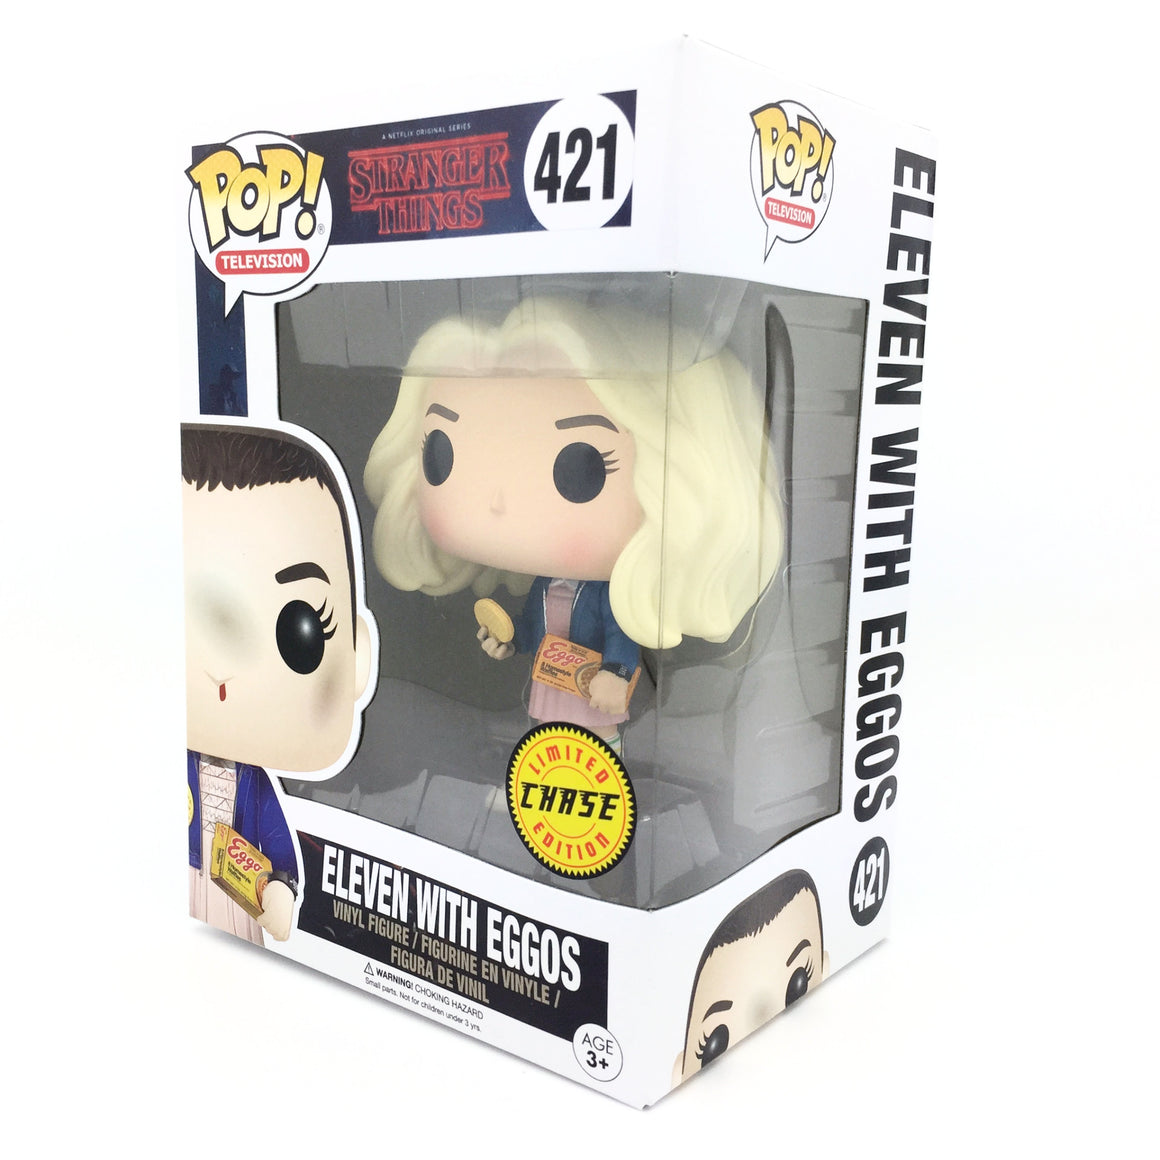 Eleven with Eggos Blonde Wig Limited Chase Edition Vinyl Figure by Funko